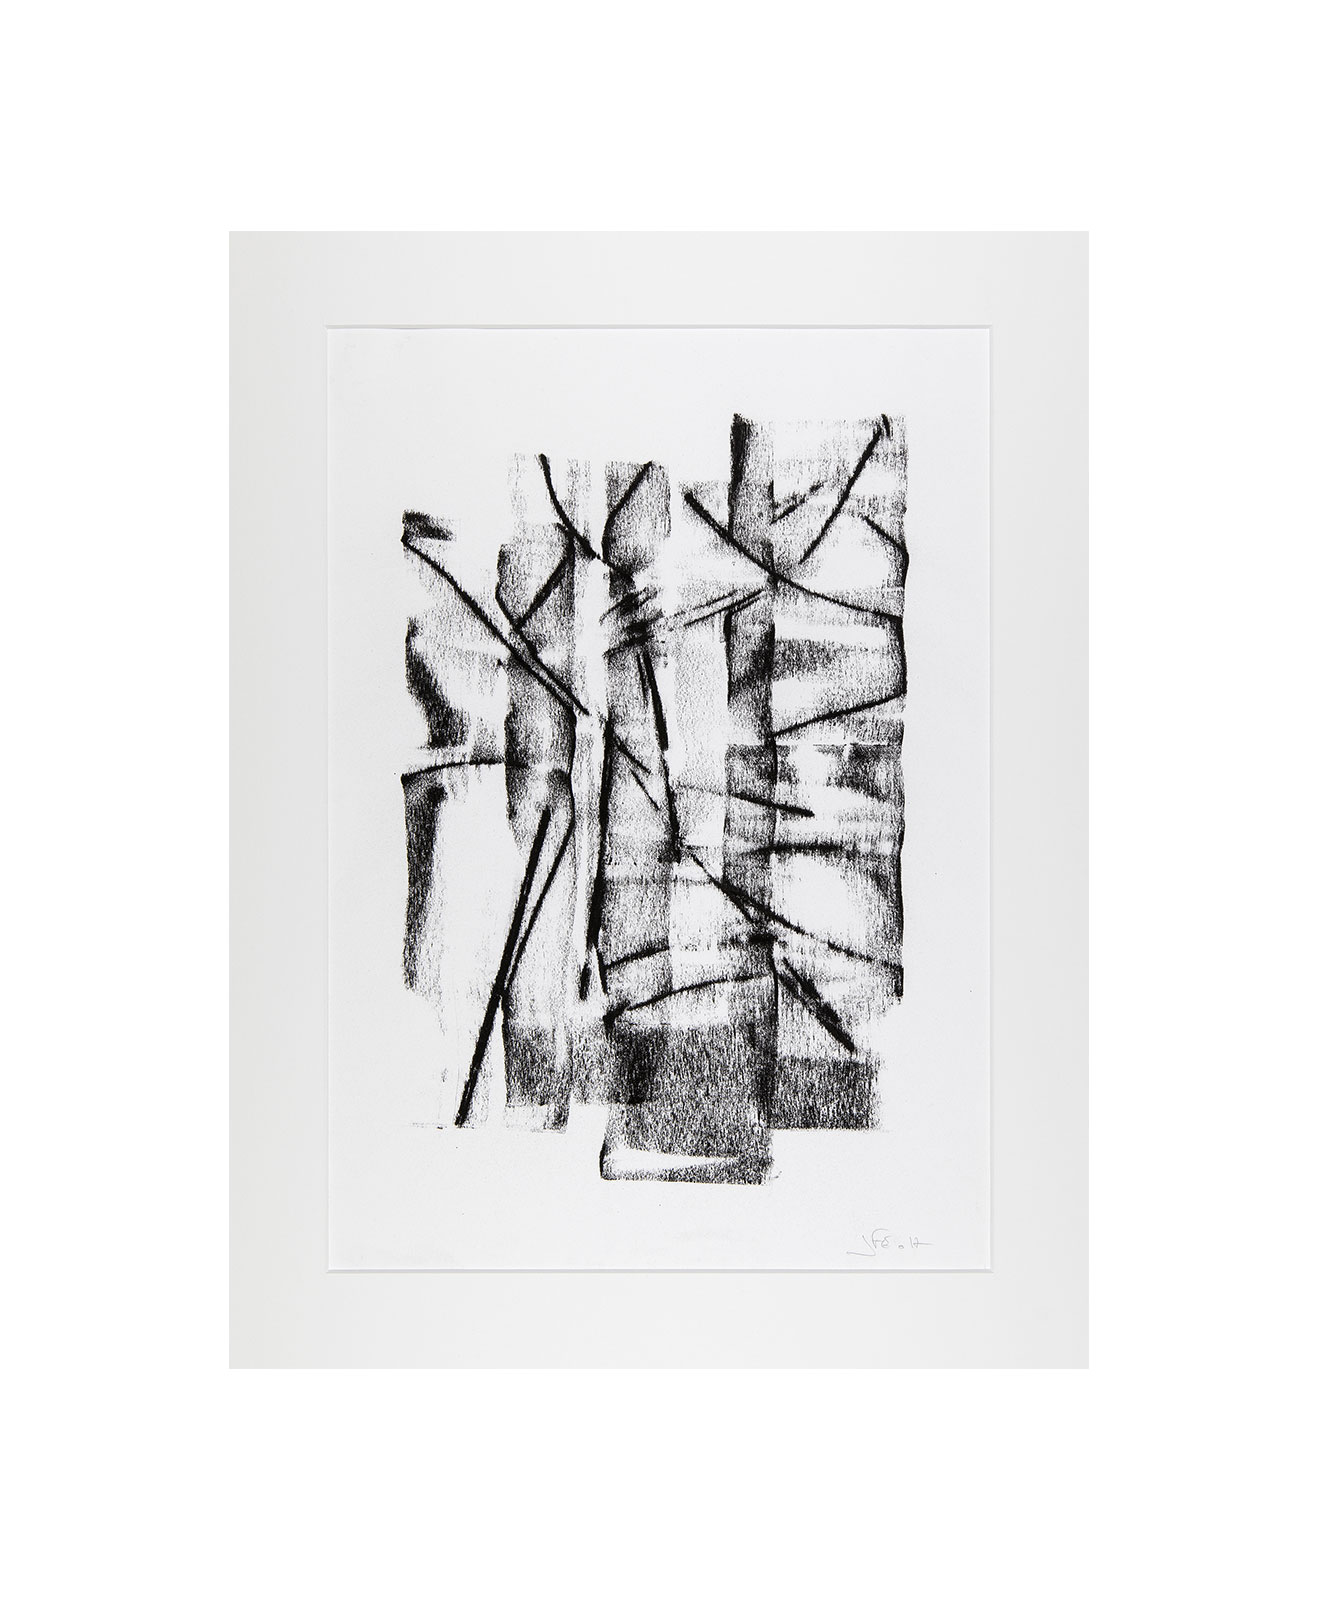 Cha 1.1, Charcoal on paper, black and white artwork, drawing, jf escande, contemporary art